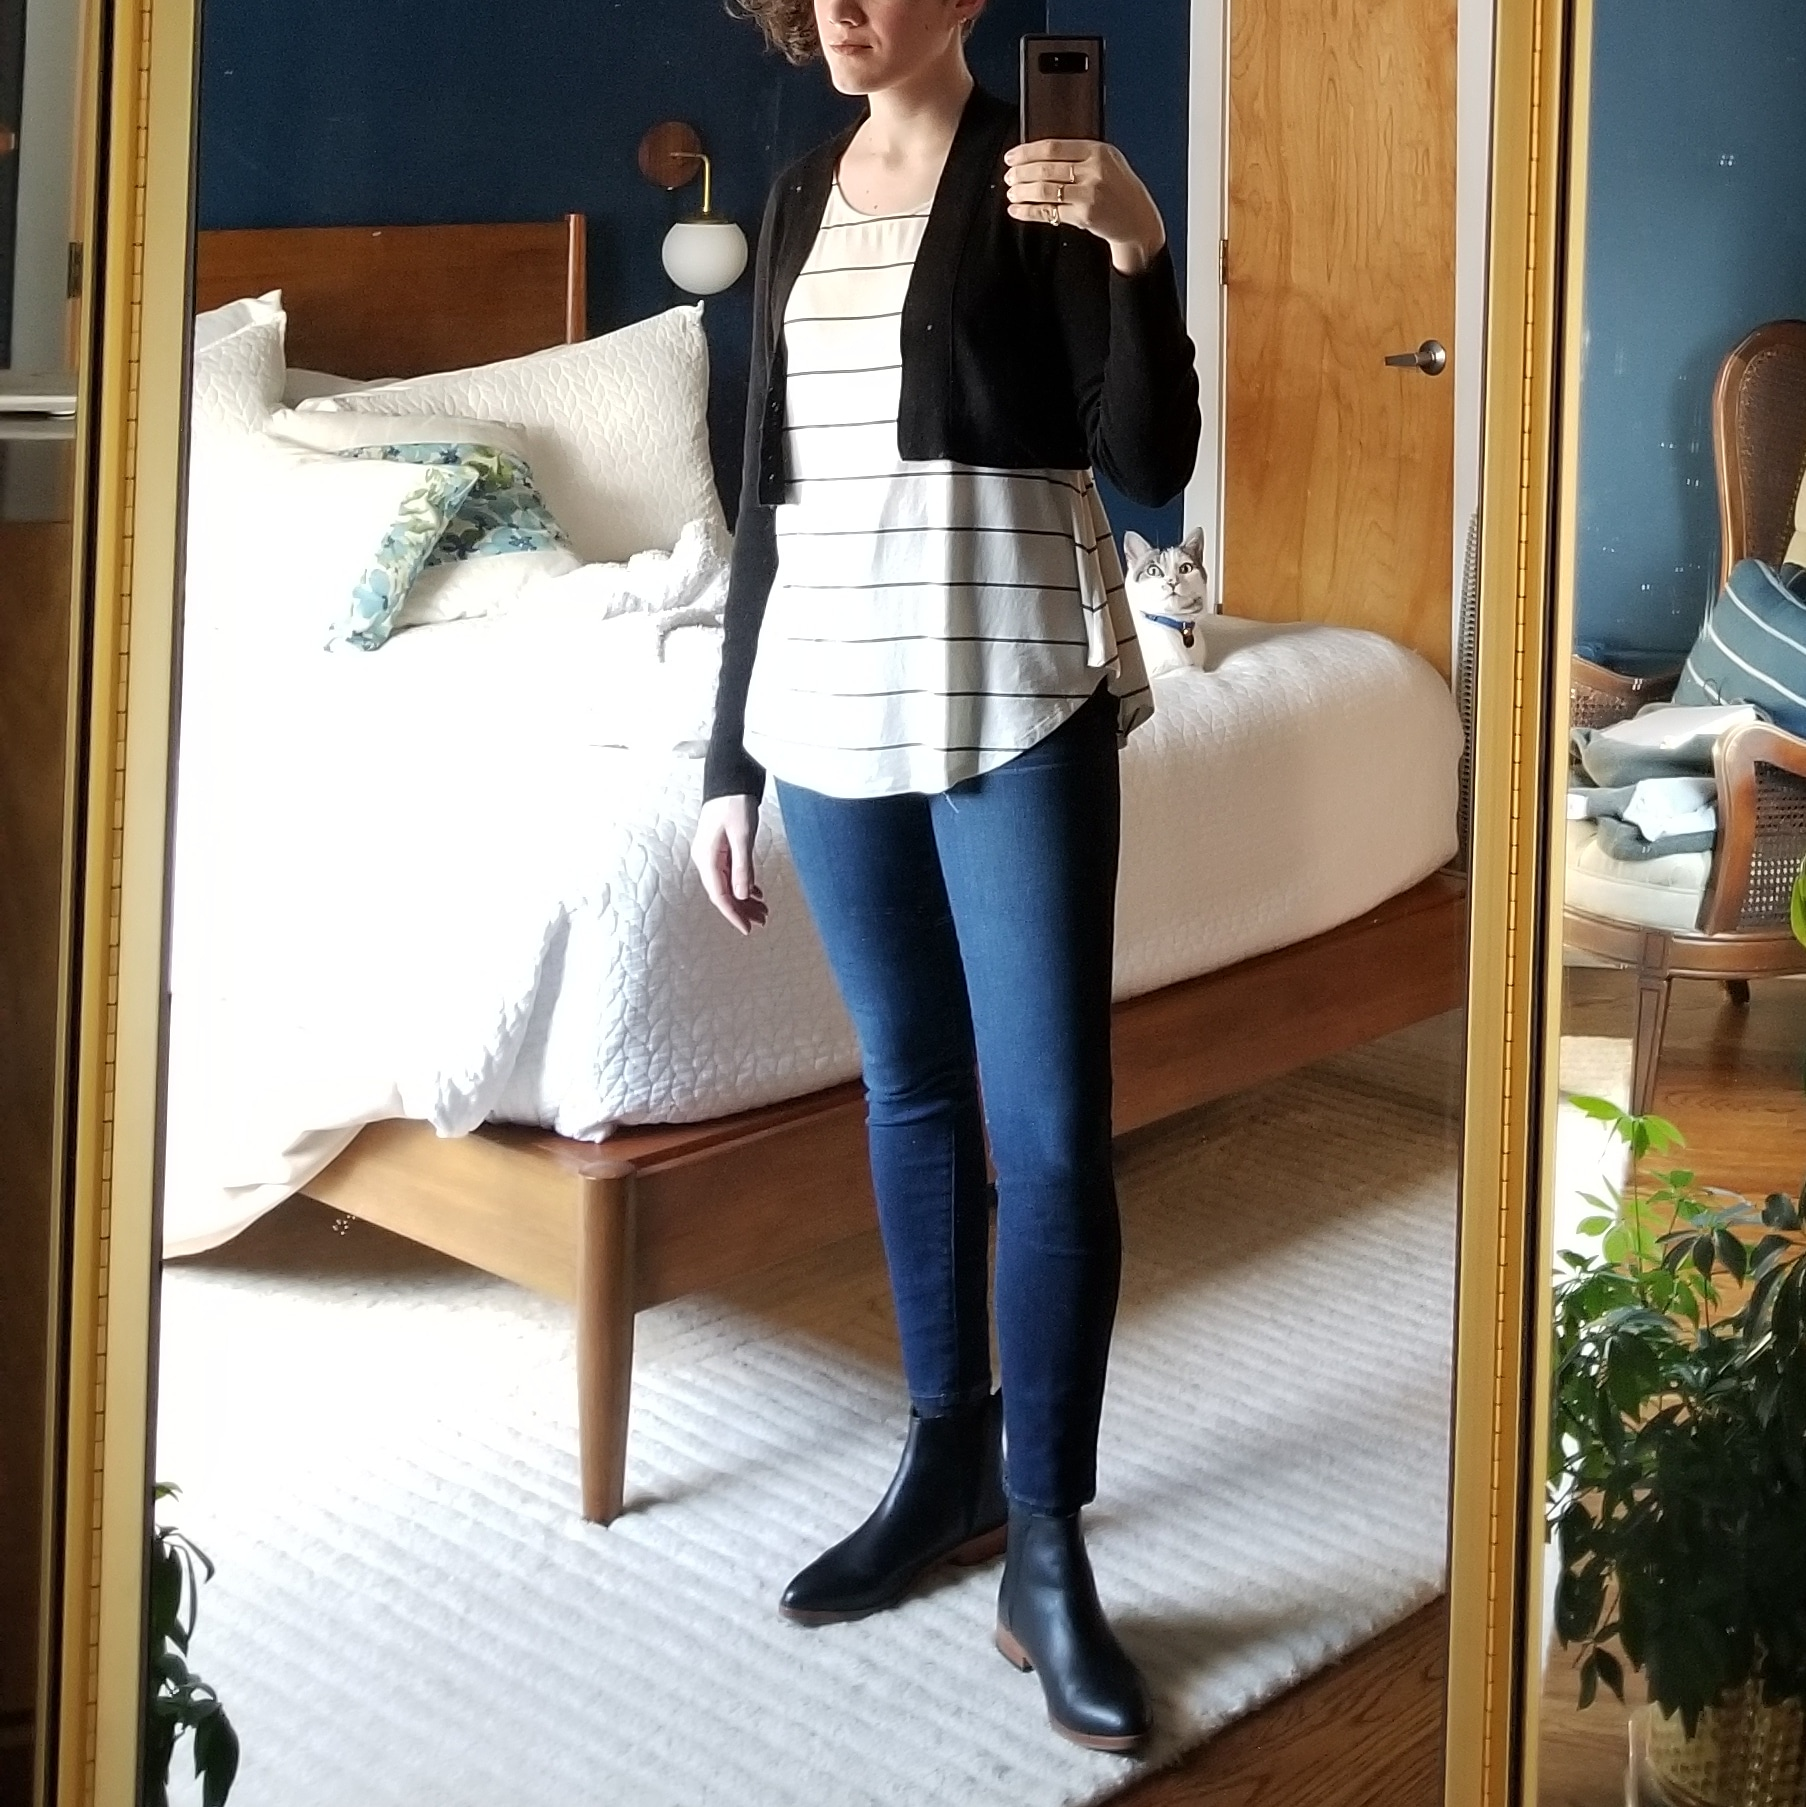 Monday - February 5, 2018Easing into the week with a boxy stripe top and skinny jeans. It doesn't get much more basic than this. The last thing I want to do on a Monday is fuss over what I'm wearing. OK with this becoming a go-to. No need to re-invent the wheel.